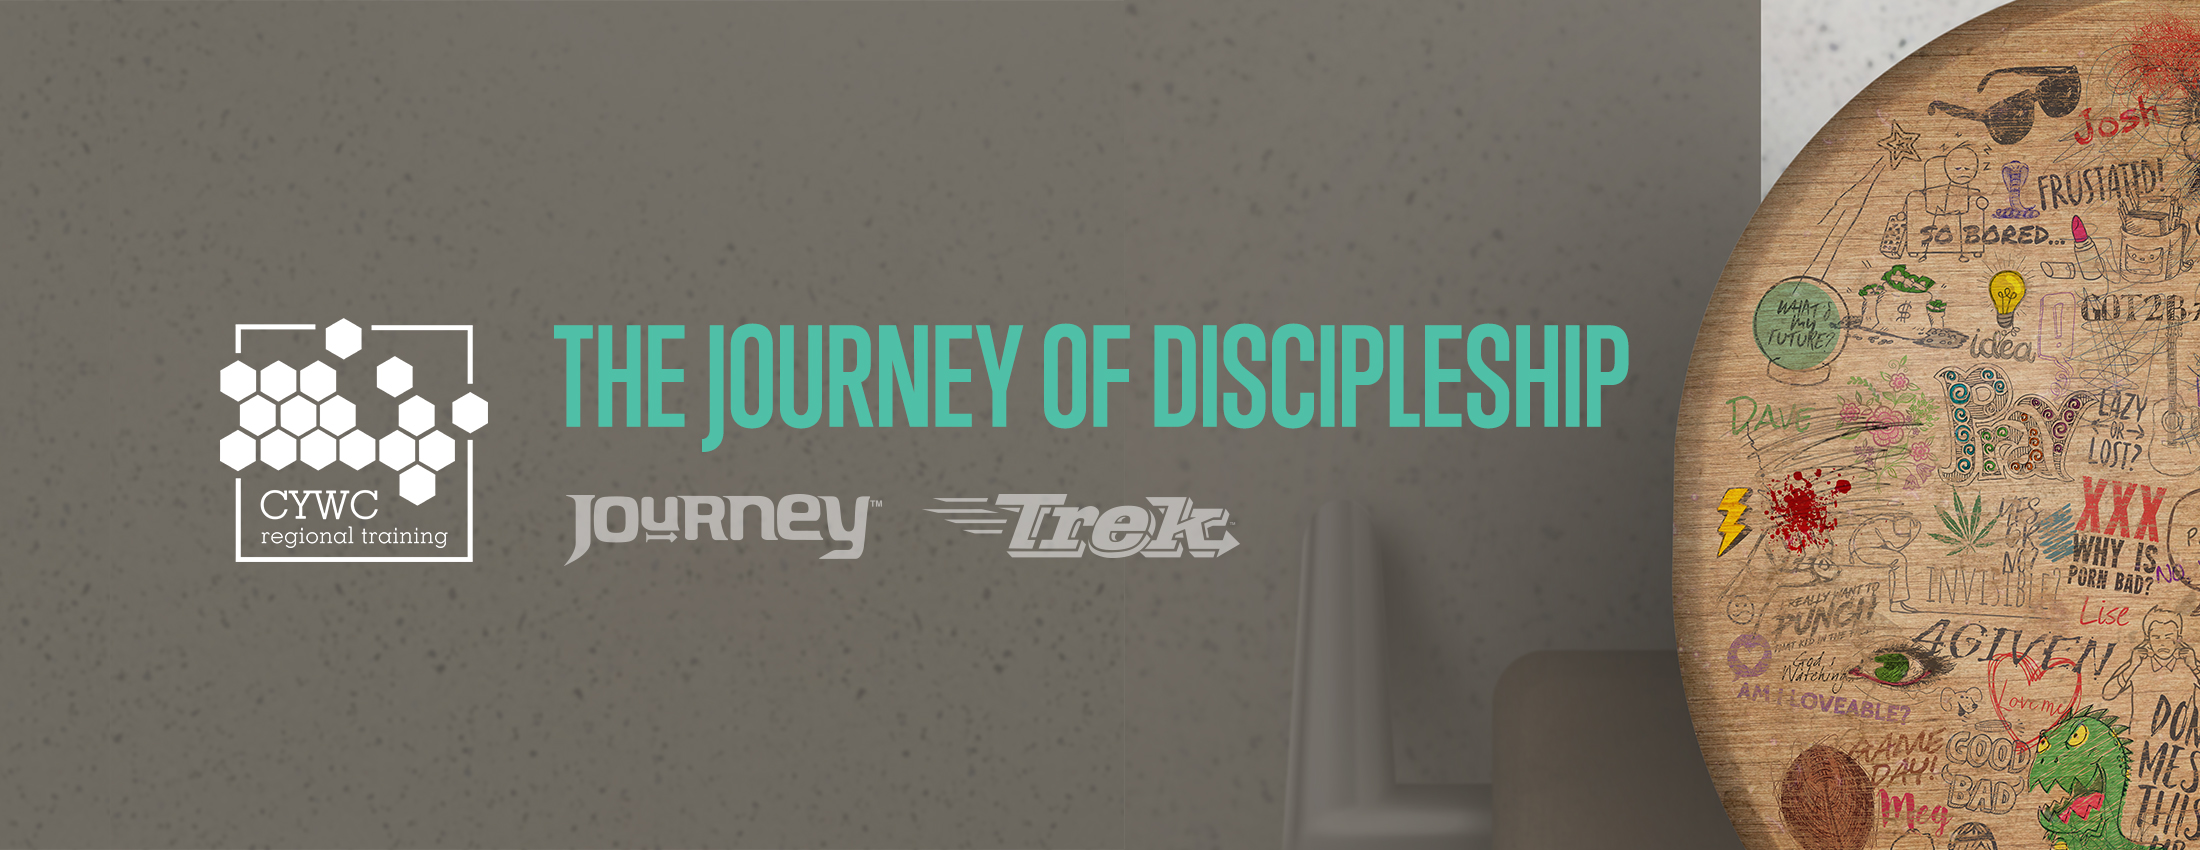 CYWC Regional Training. The journey of discipleship: Journey and Trek.